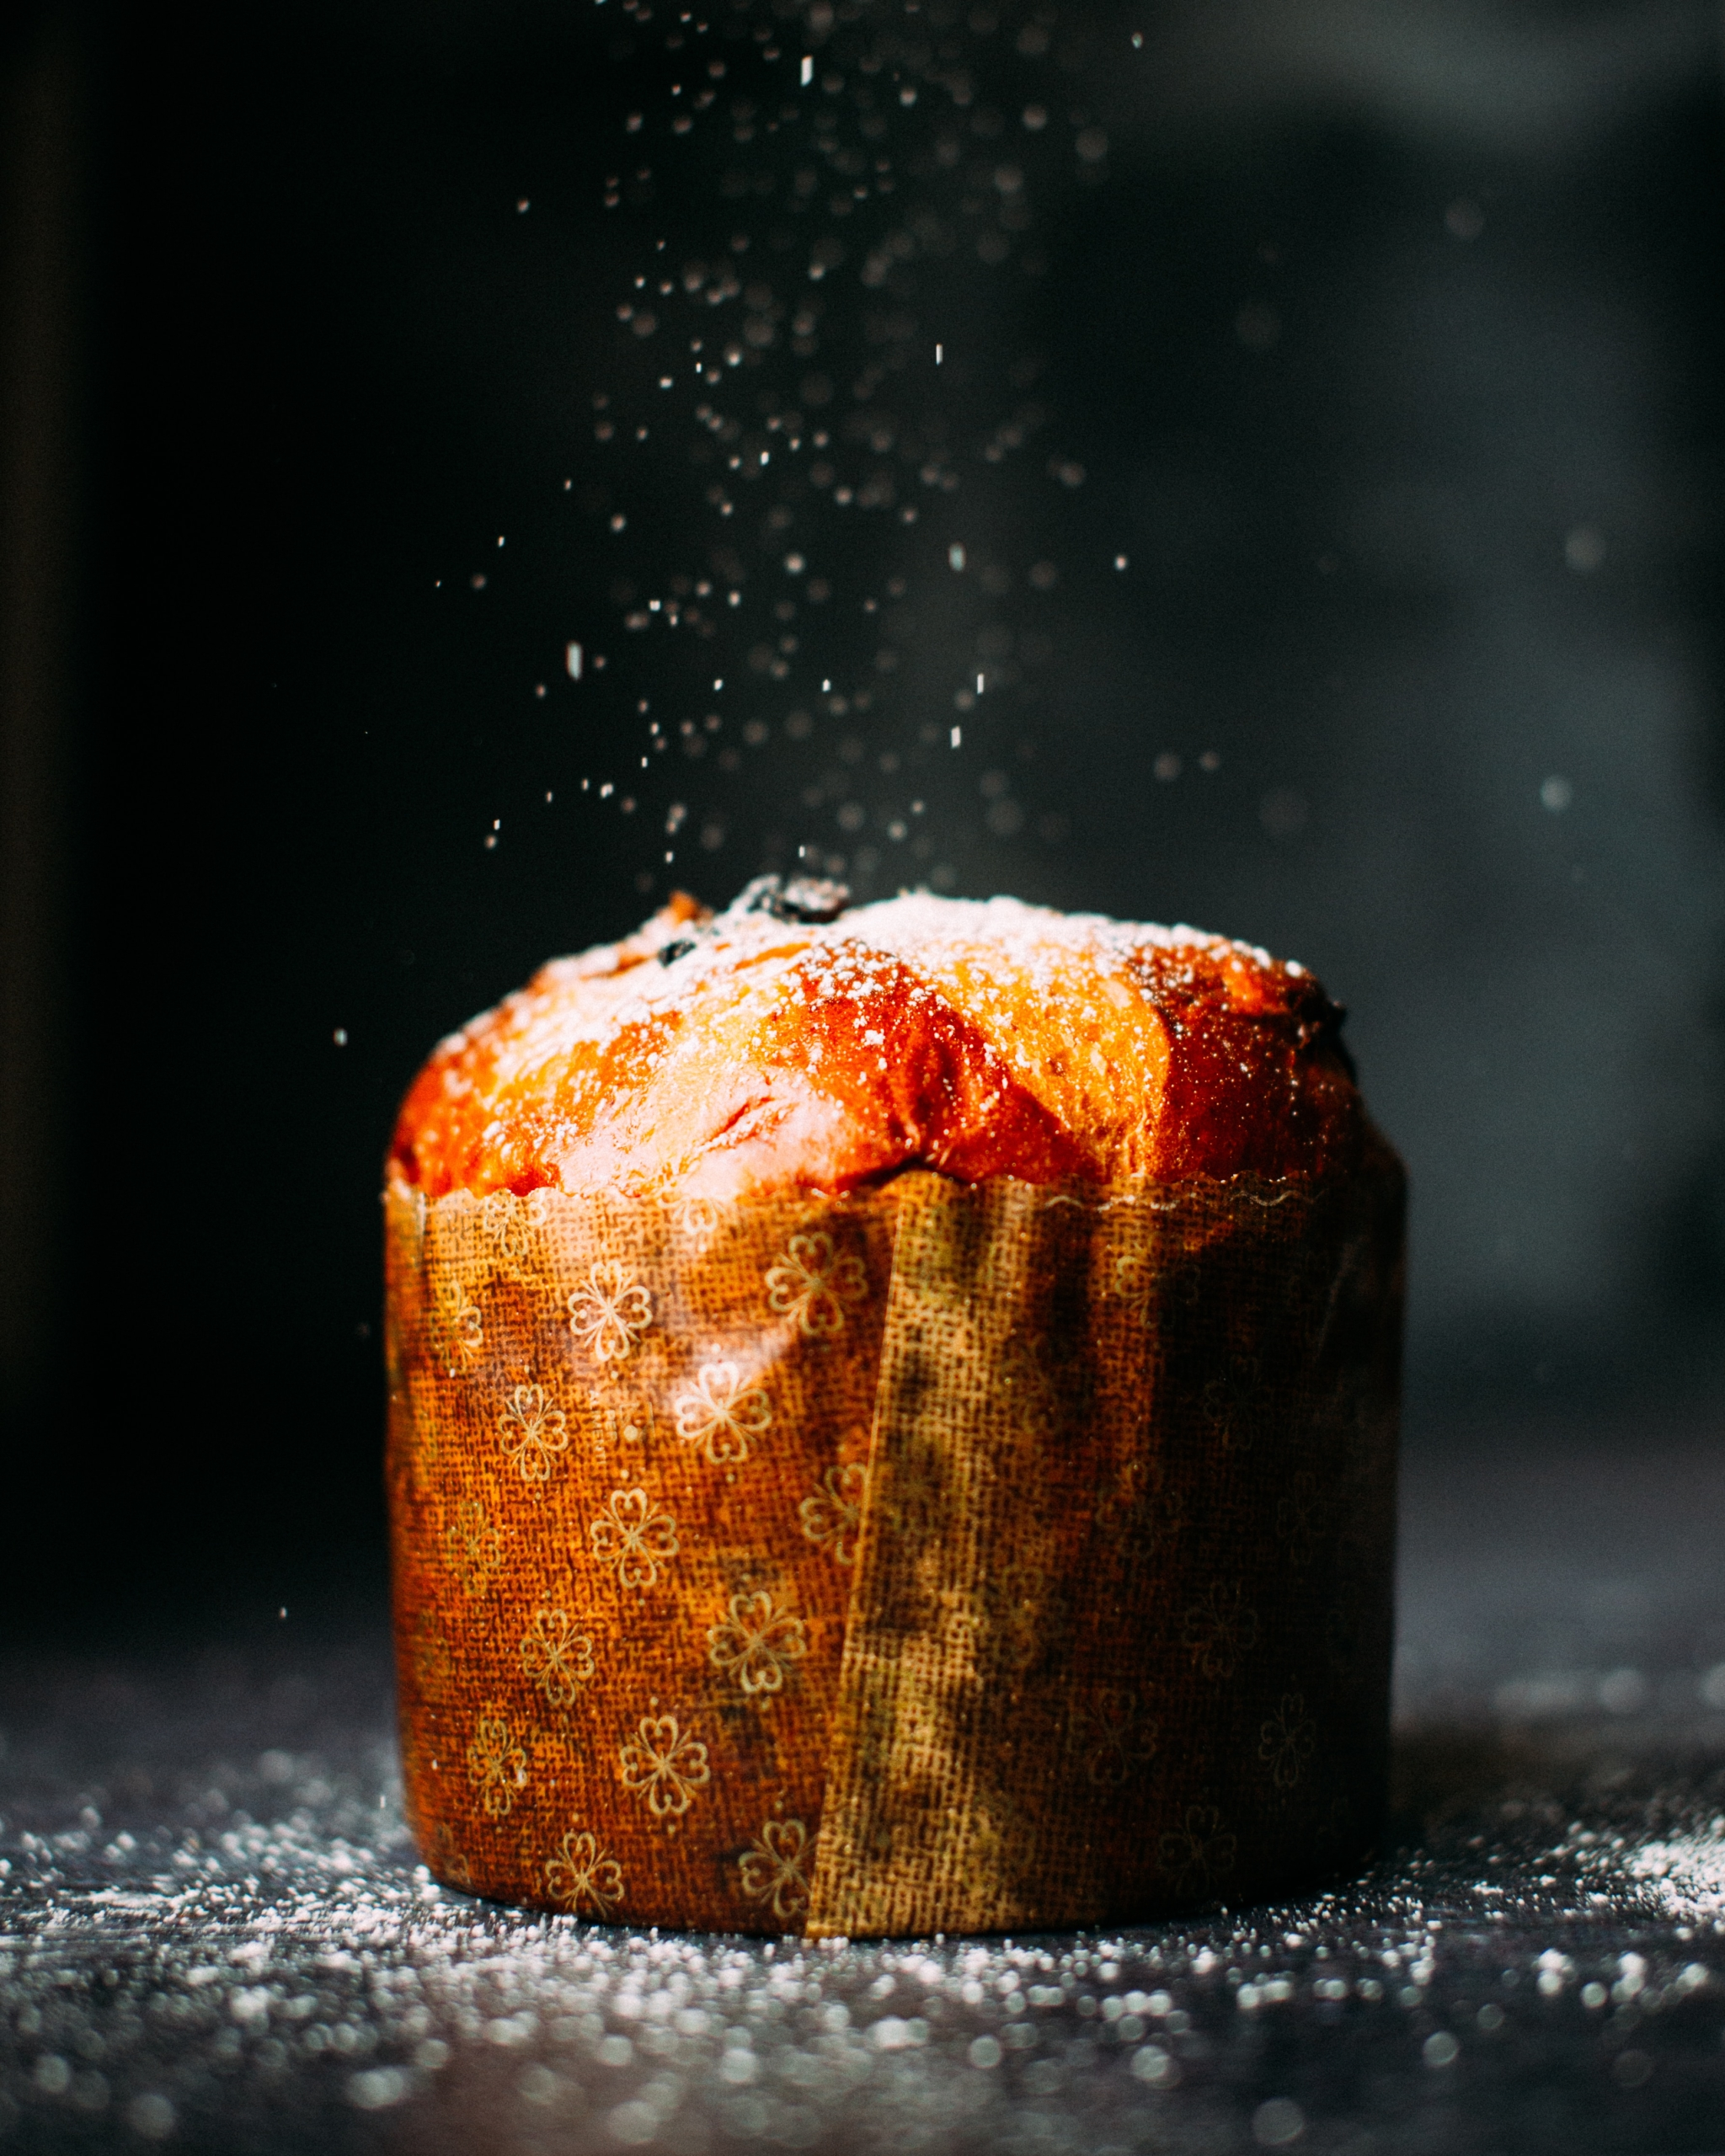 GET A HOMEMADE PANETTONE FOR CHRISTMAS!